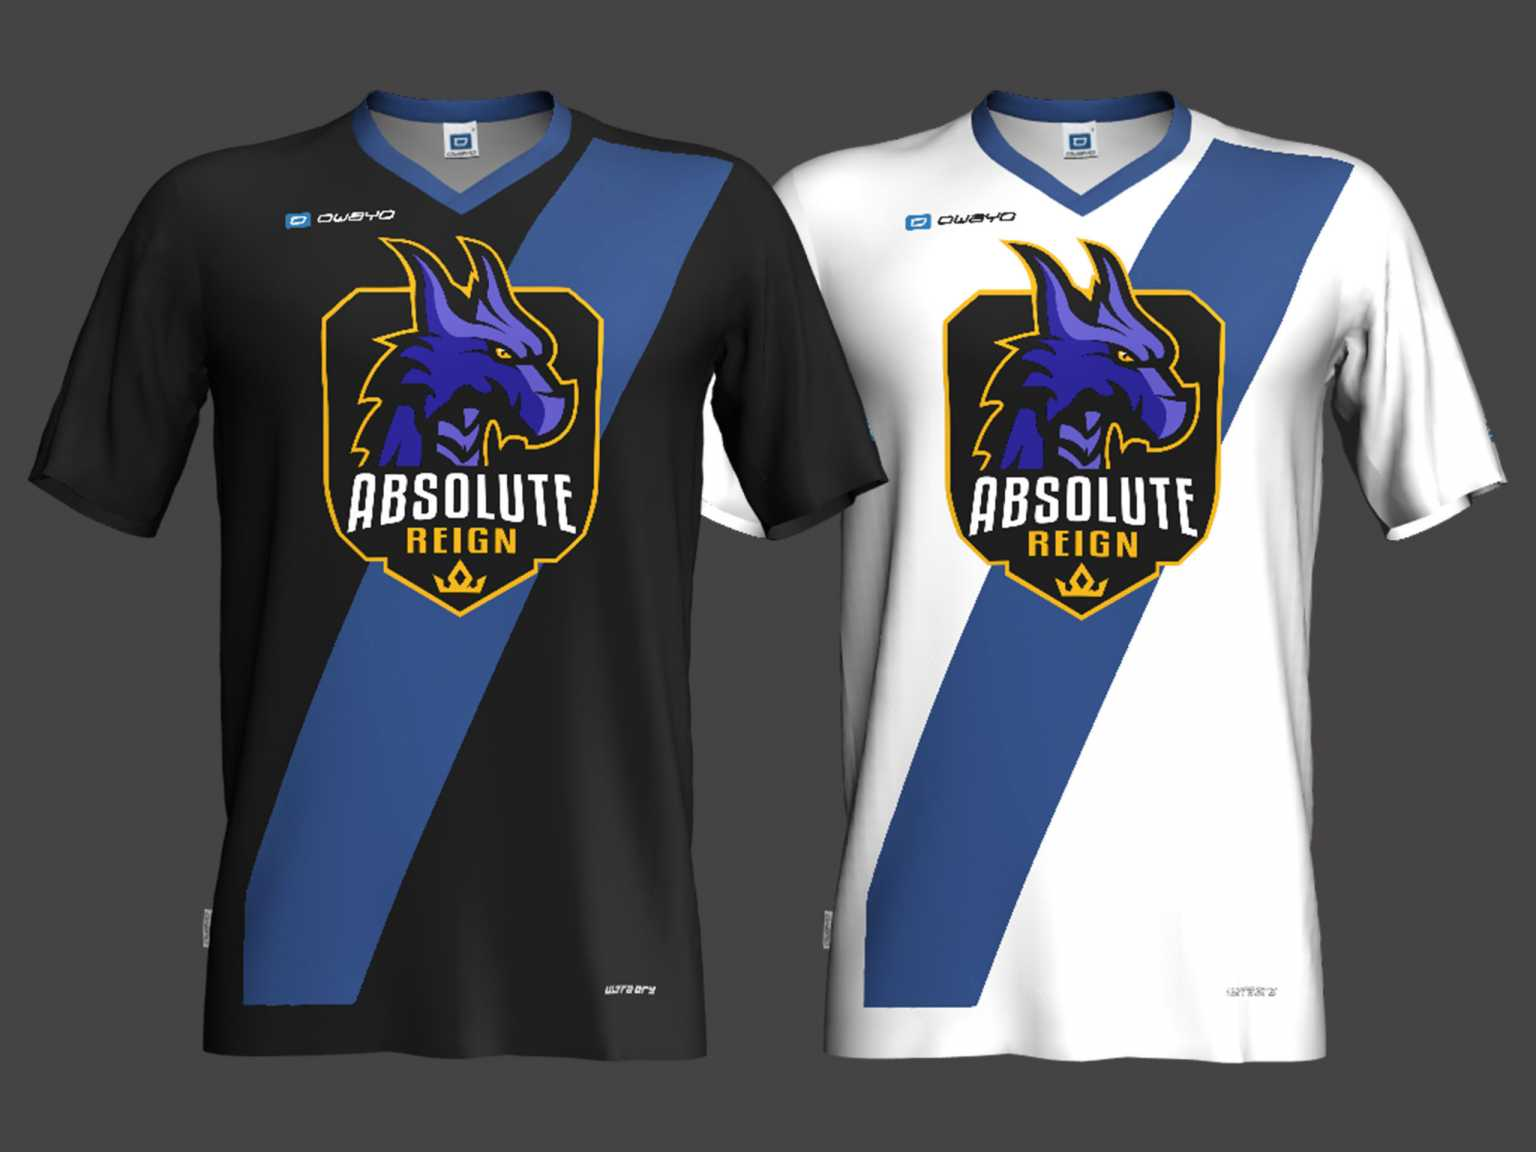 Jerseys for Absolute Reign, an E-Sports team